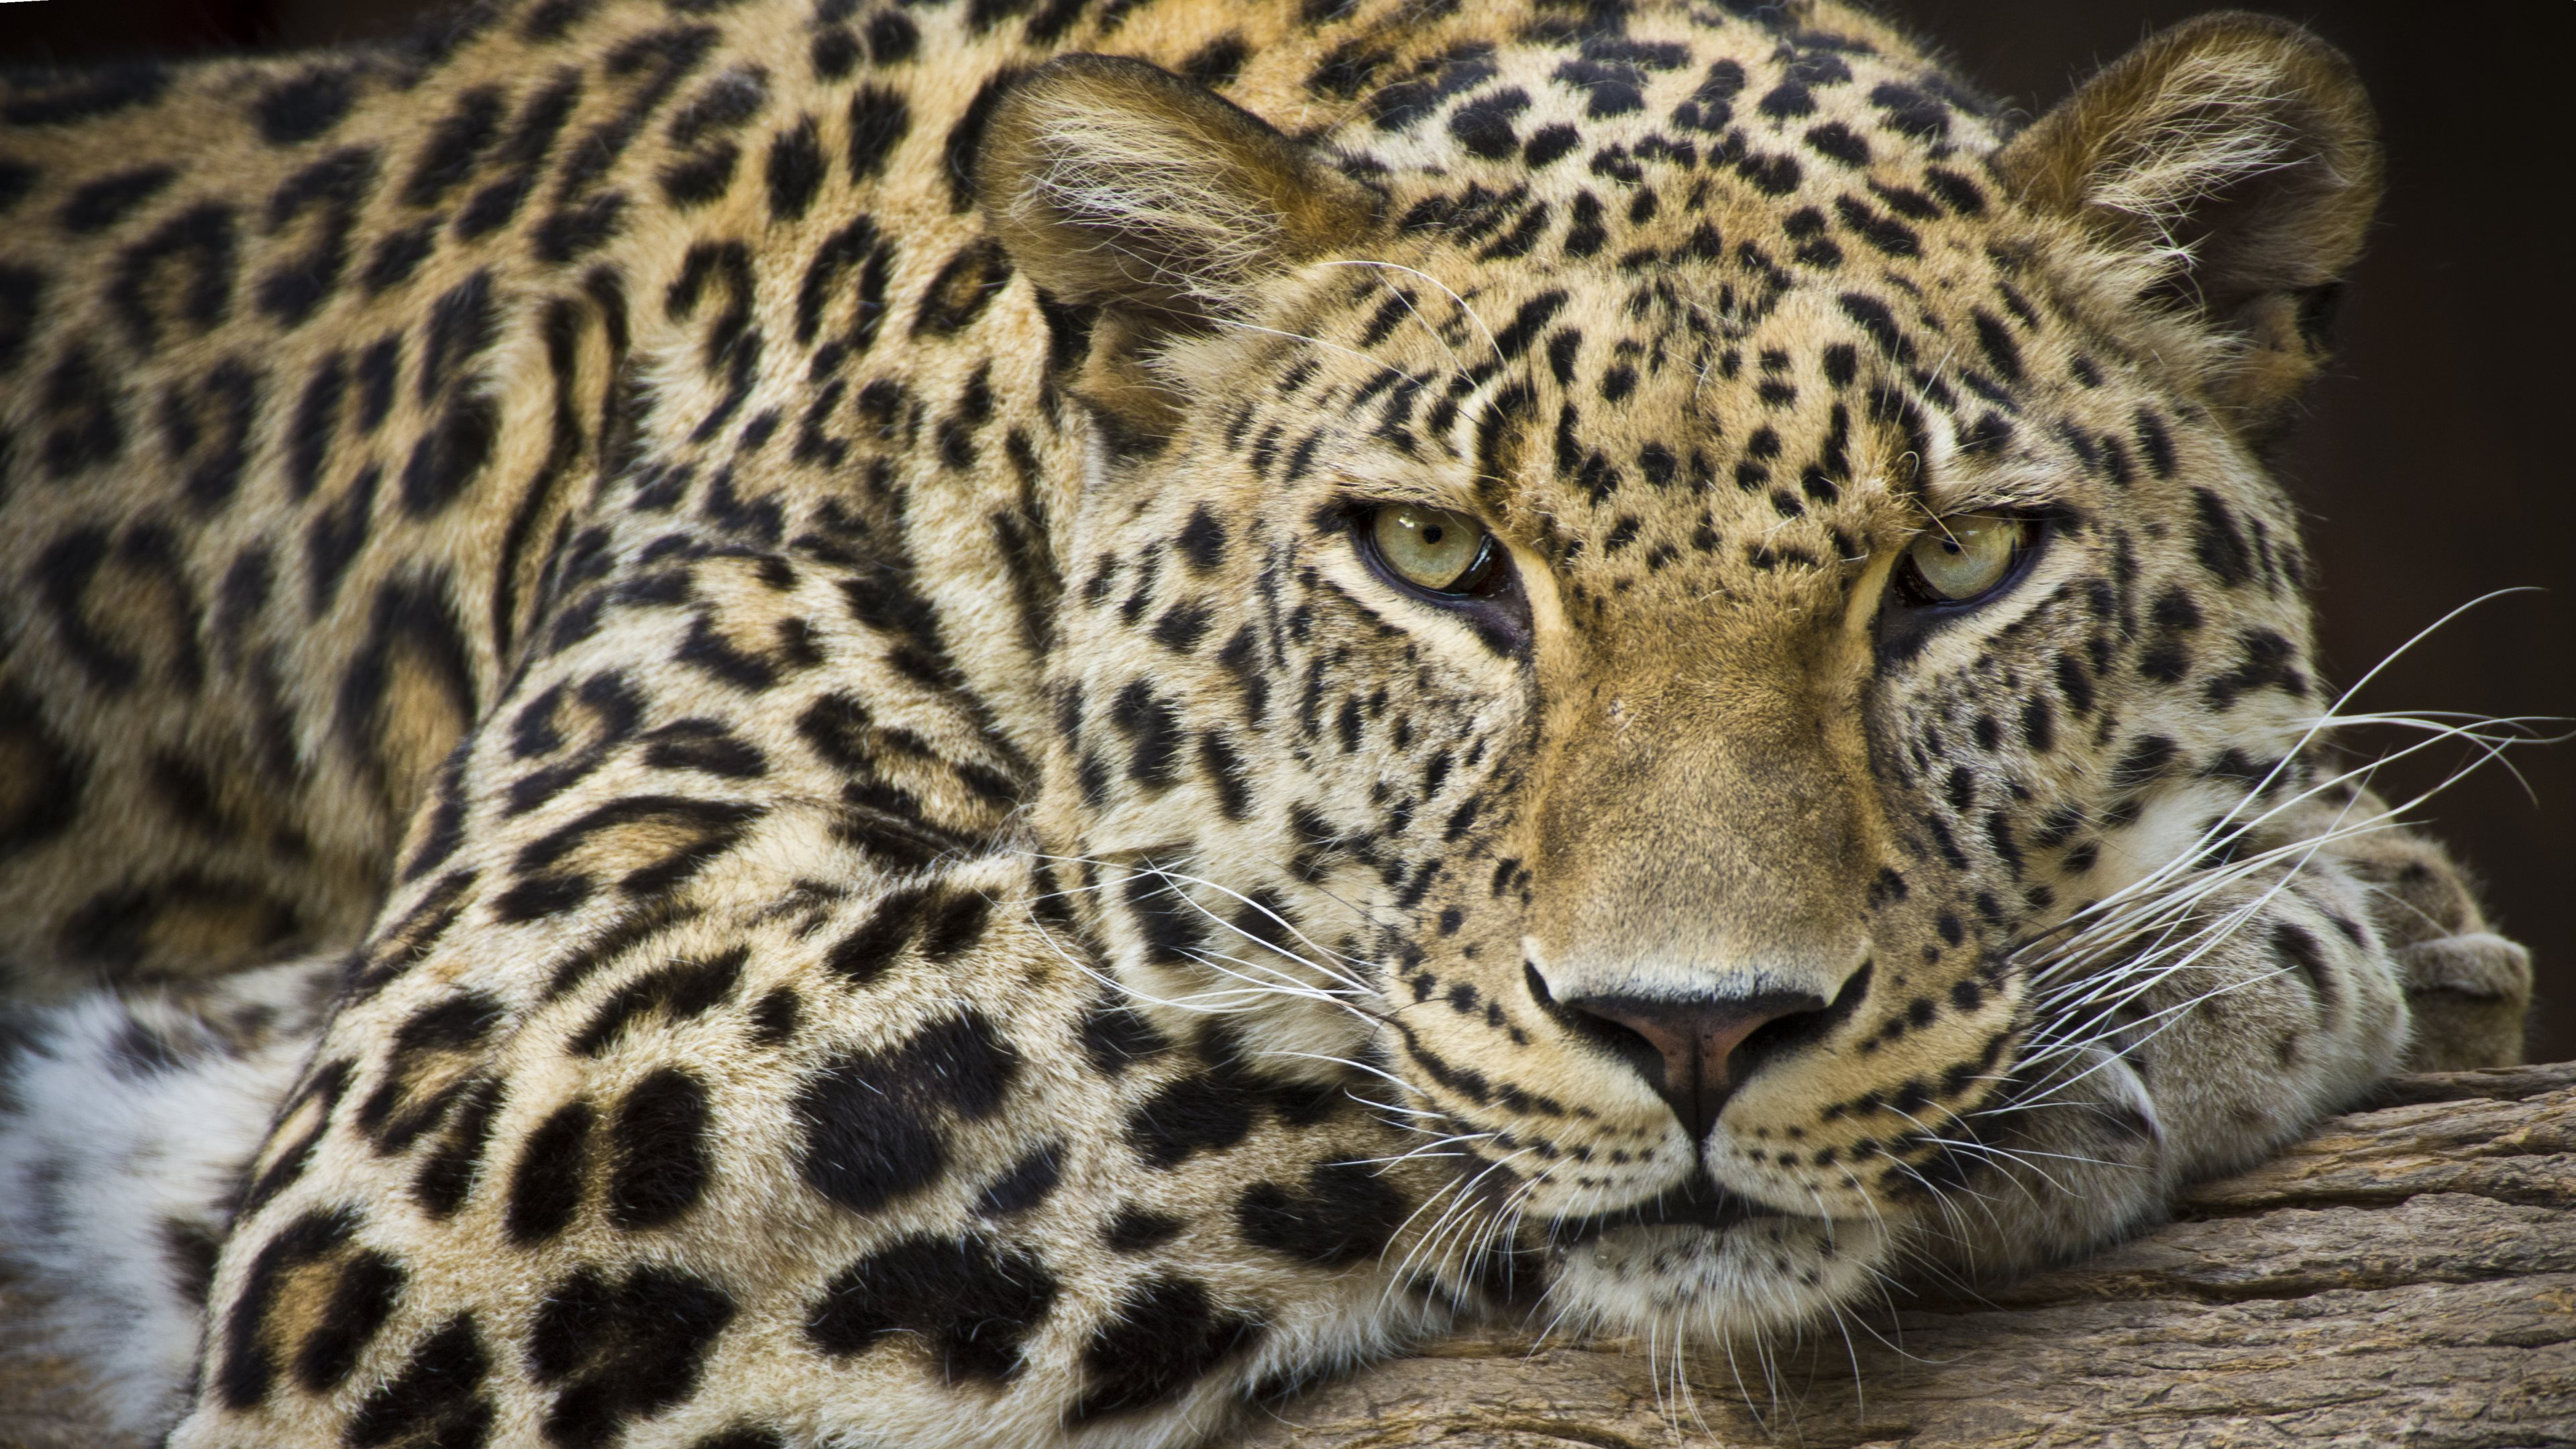 Leopard HQ Definition Image | Dreamicus Dreamer's Dictionary